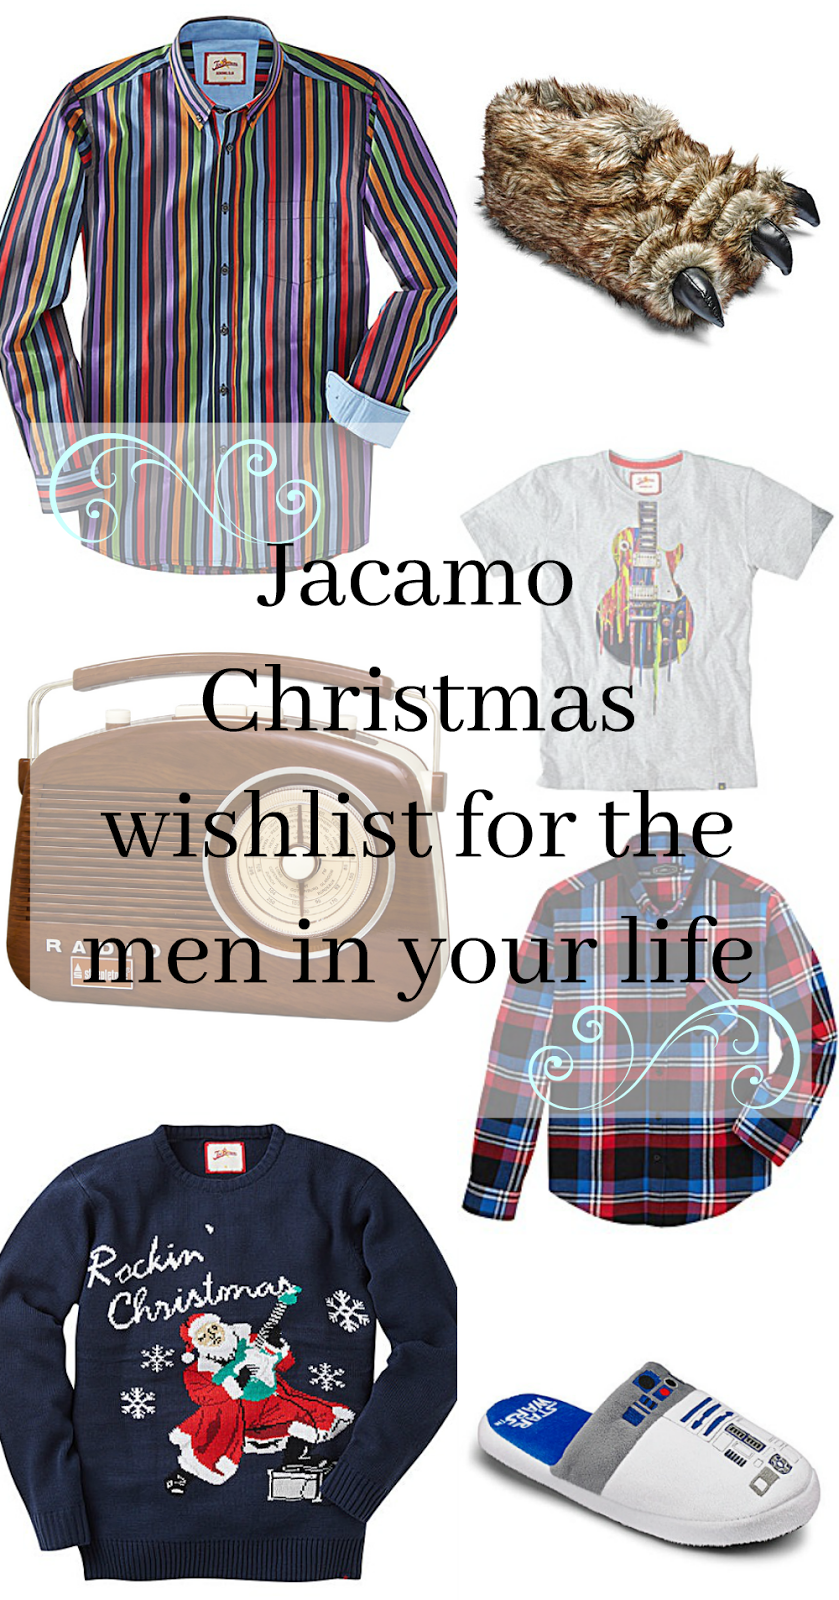 CHRISTMAS-WISHLIST-FOR-MEN-FROM-JACAMO-THE-PLUS-SIZE-MENS-WEBSITE // www.xloveleahx.co.uk